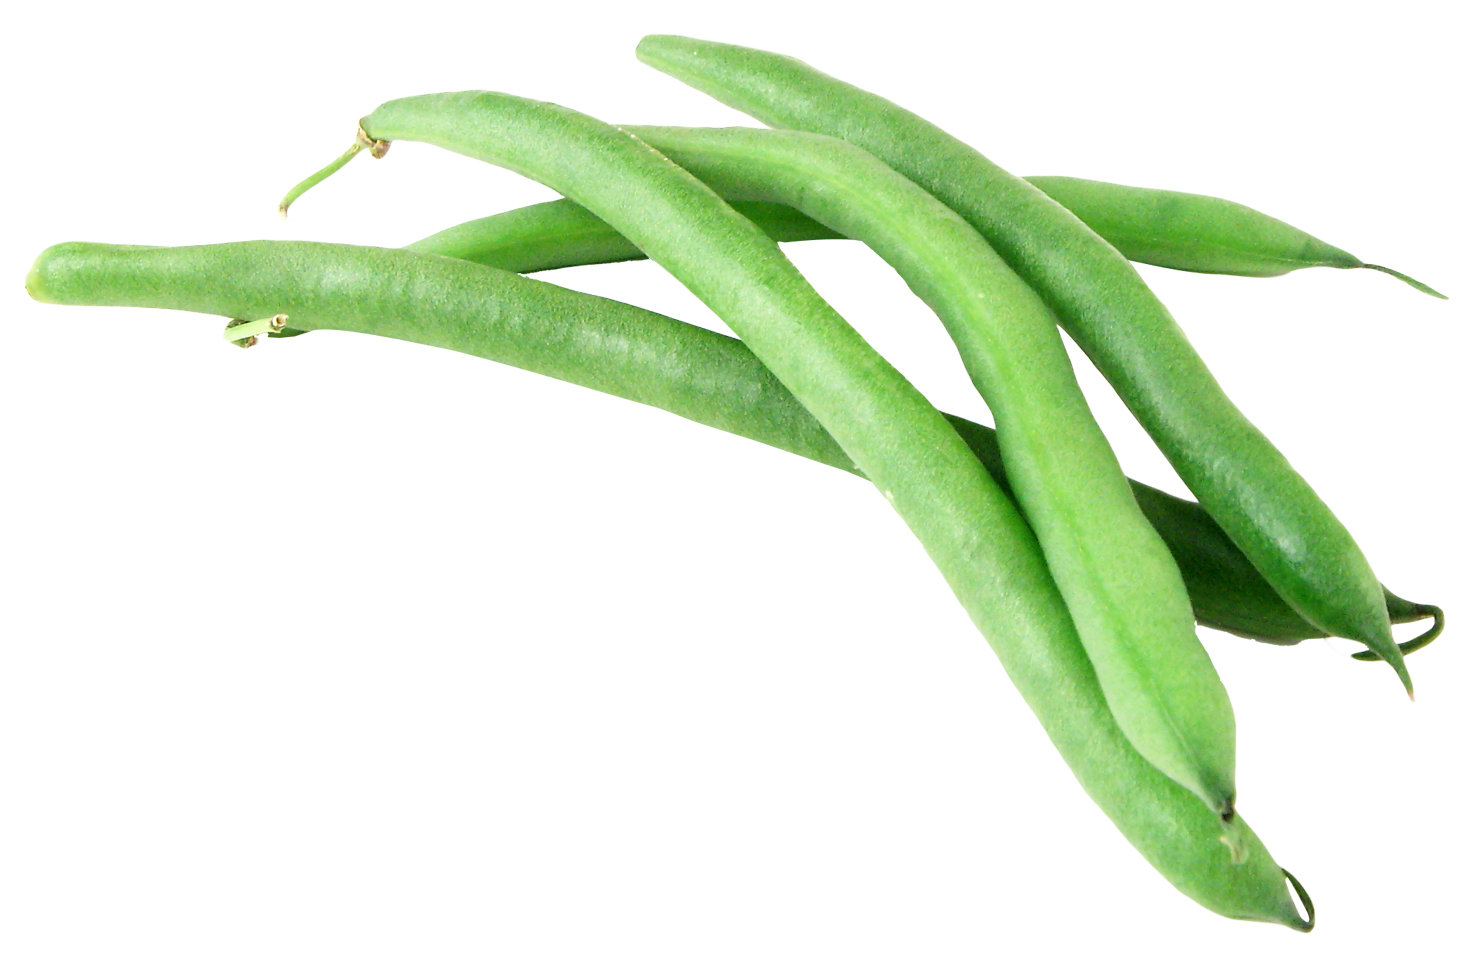 Green Beans PNG Image